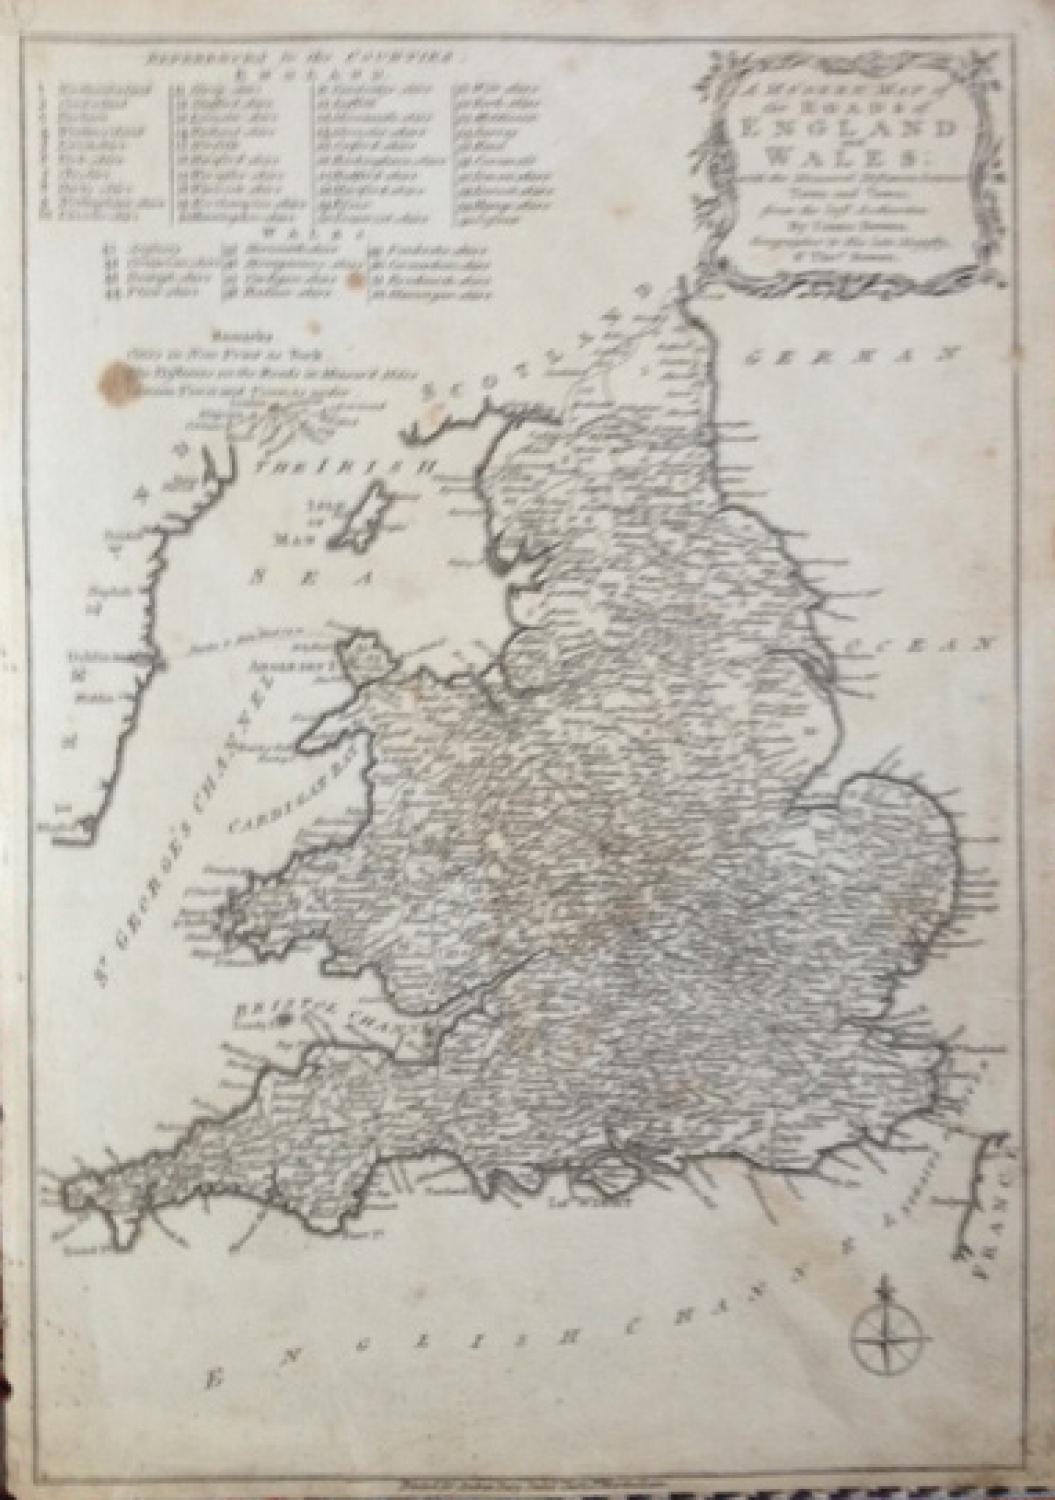 Bowen - Map of the Roads of England and Wales